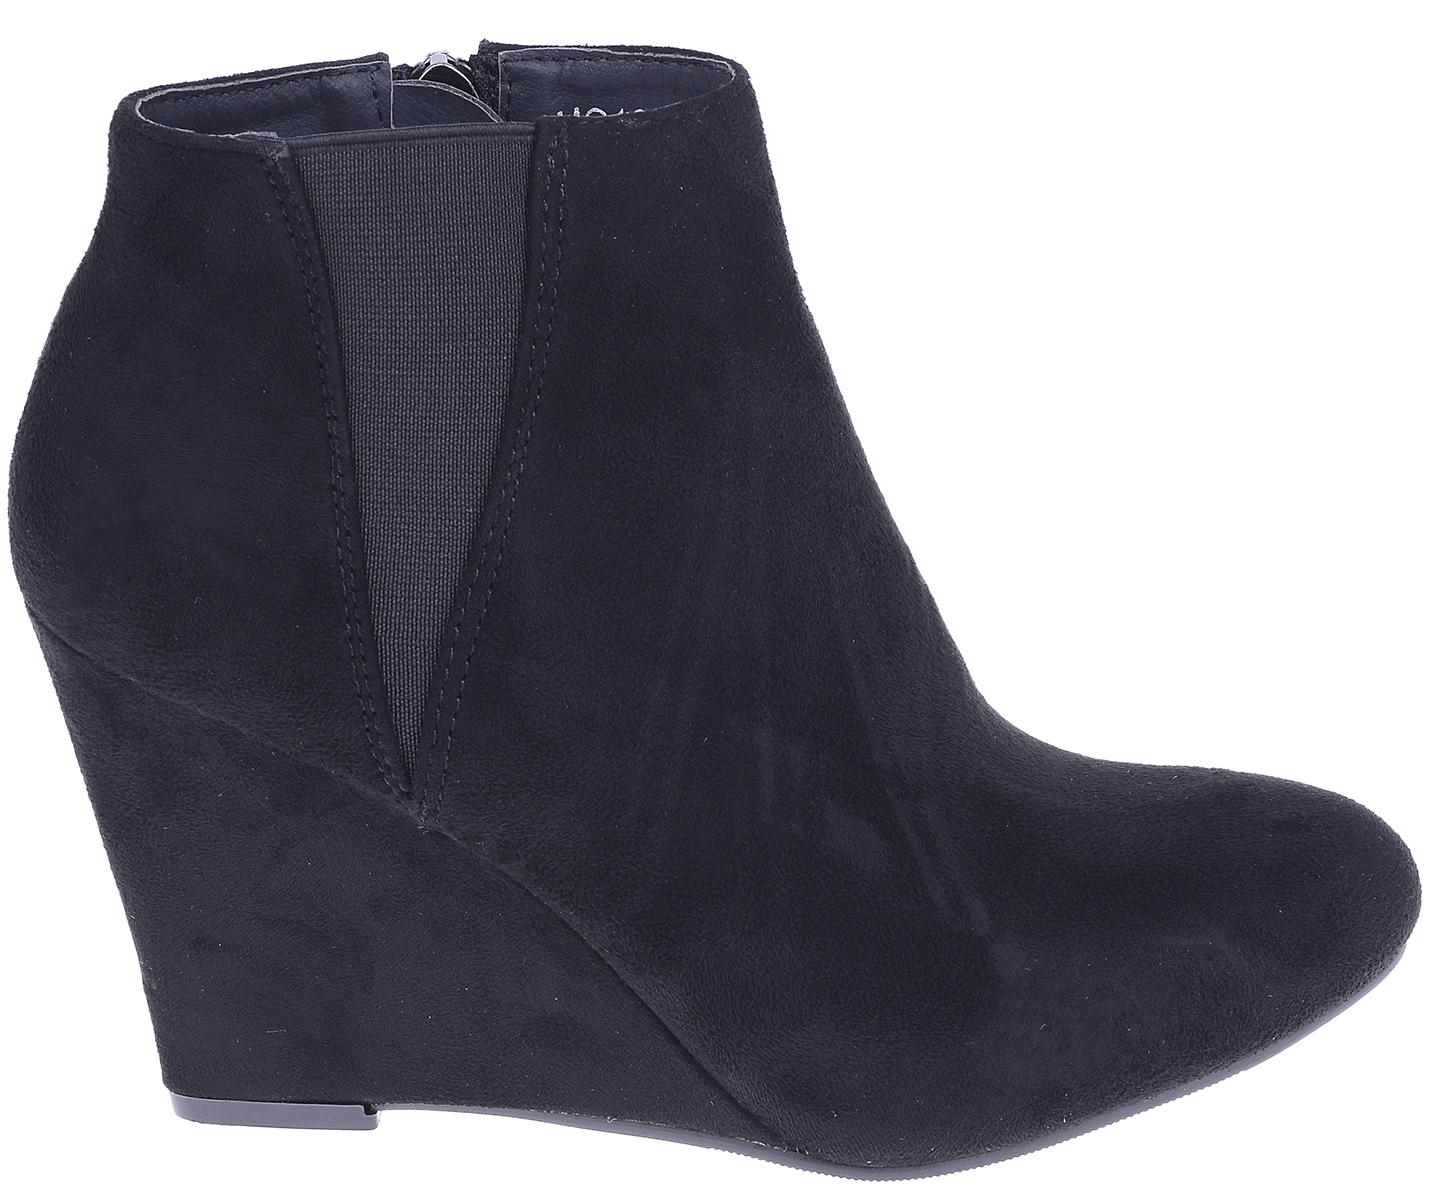 retro keilabsatz wedges ankle boots stiefeletten. Black Bedroom Furniture Sets. Home Design Ideas